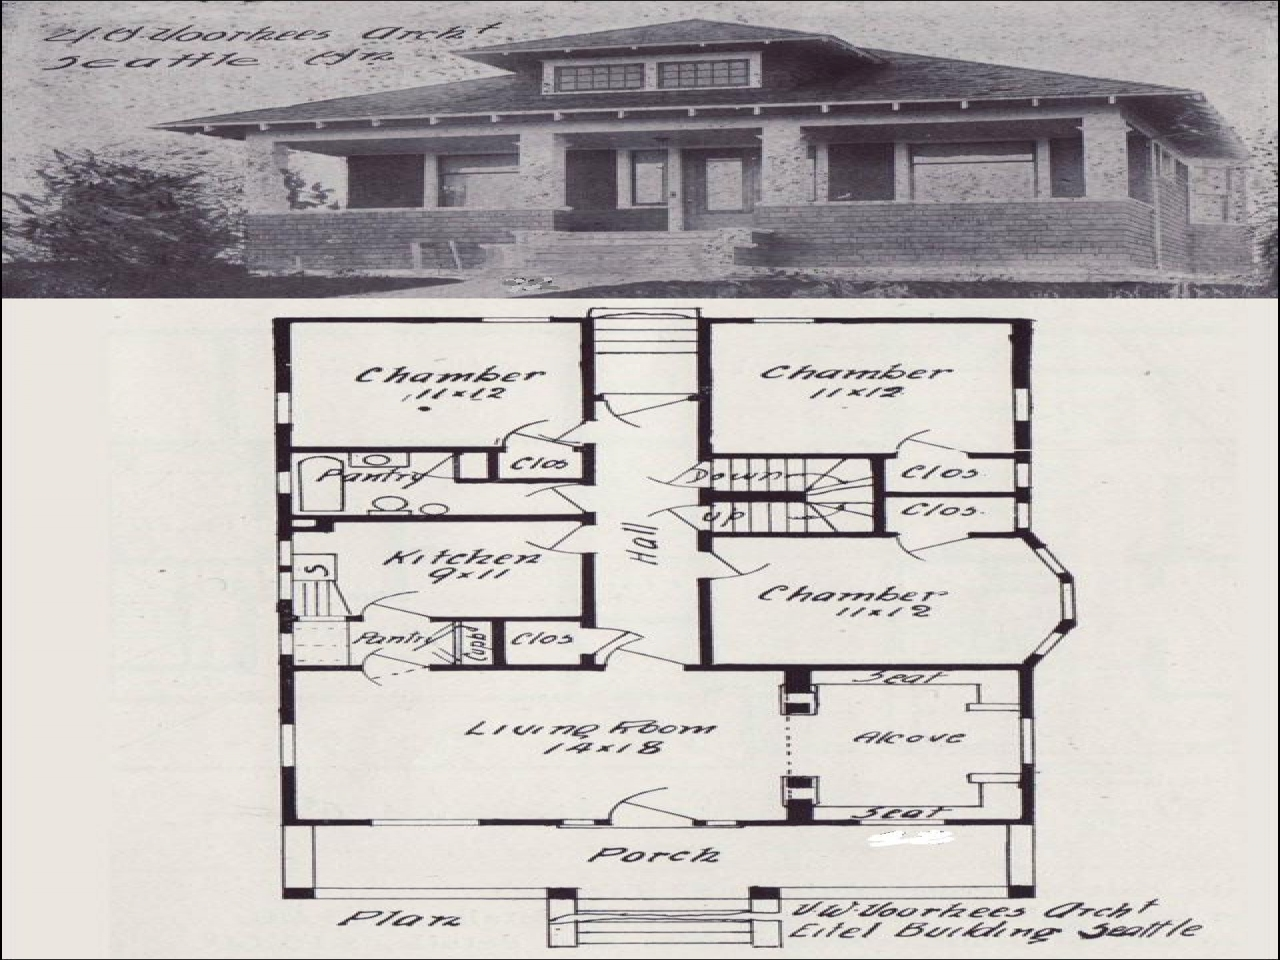 Vintage bungalow house plan 1920 bungalow house plans for 1920 bungalow house plans